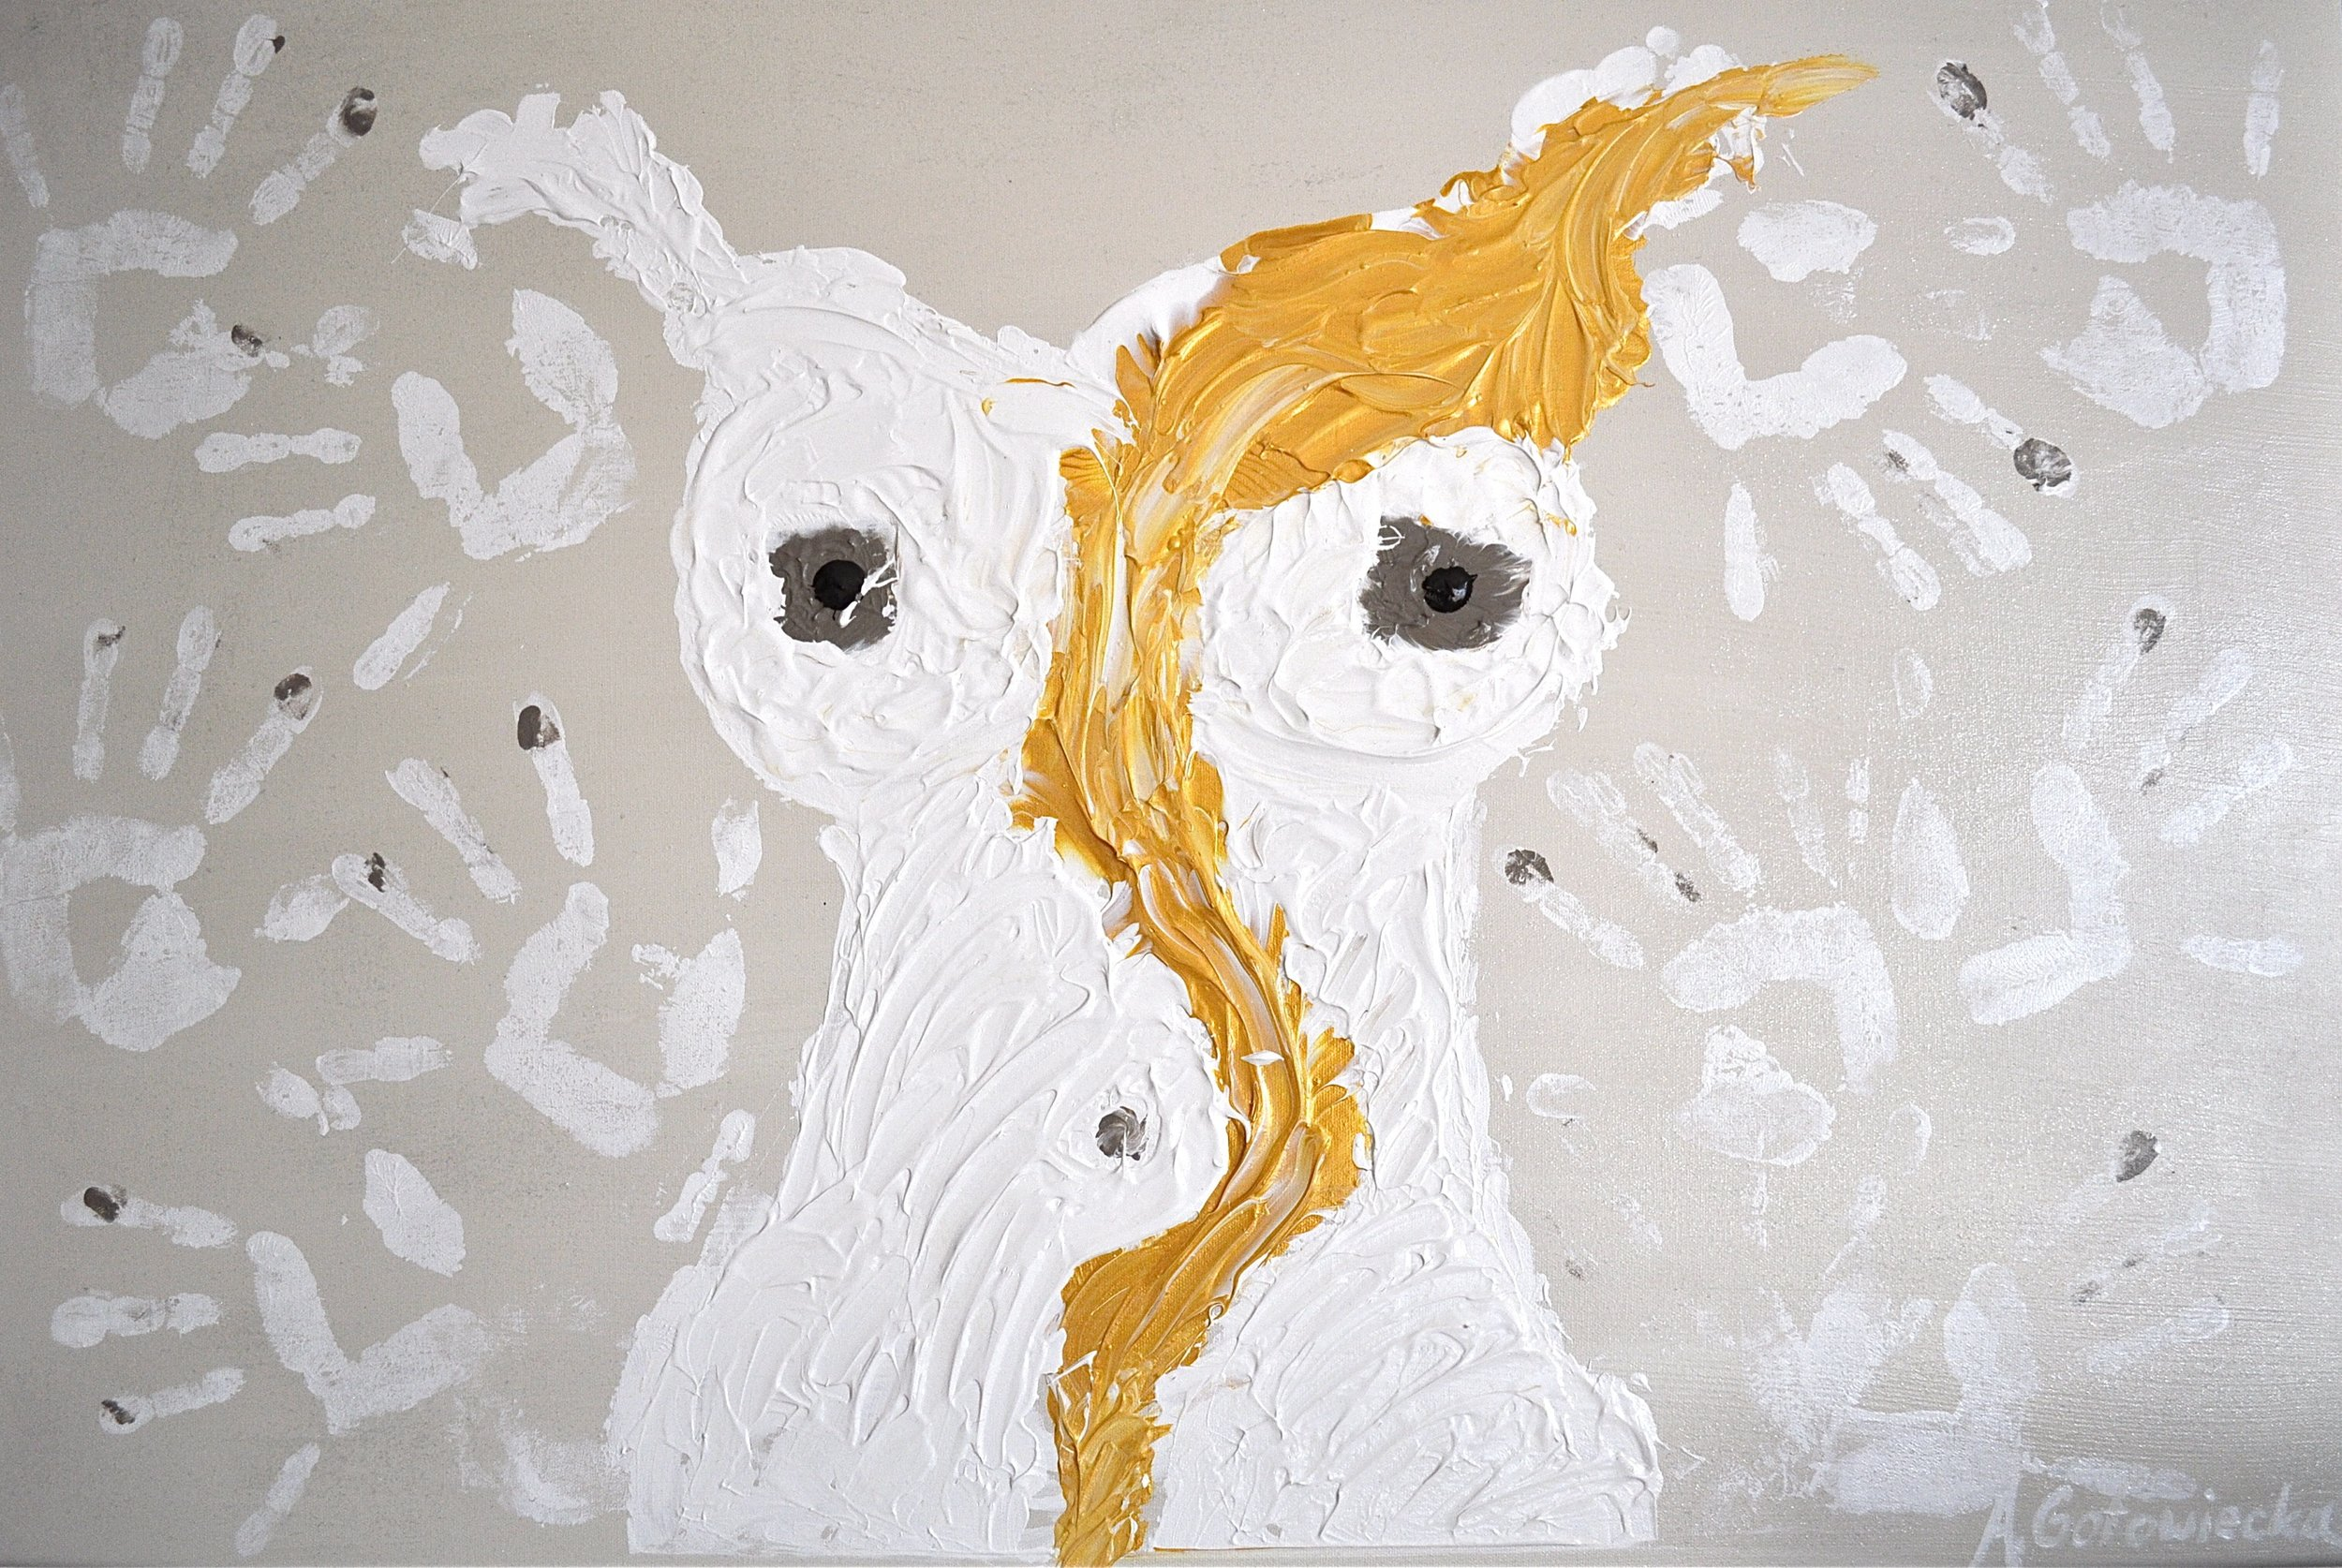 'Ma Philosophie' - WISE WOMAN 60x90cm-2013.JPG